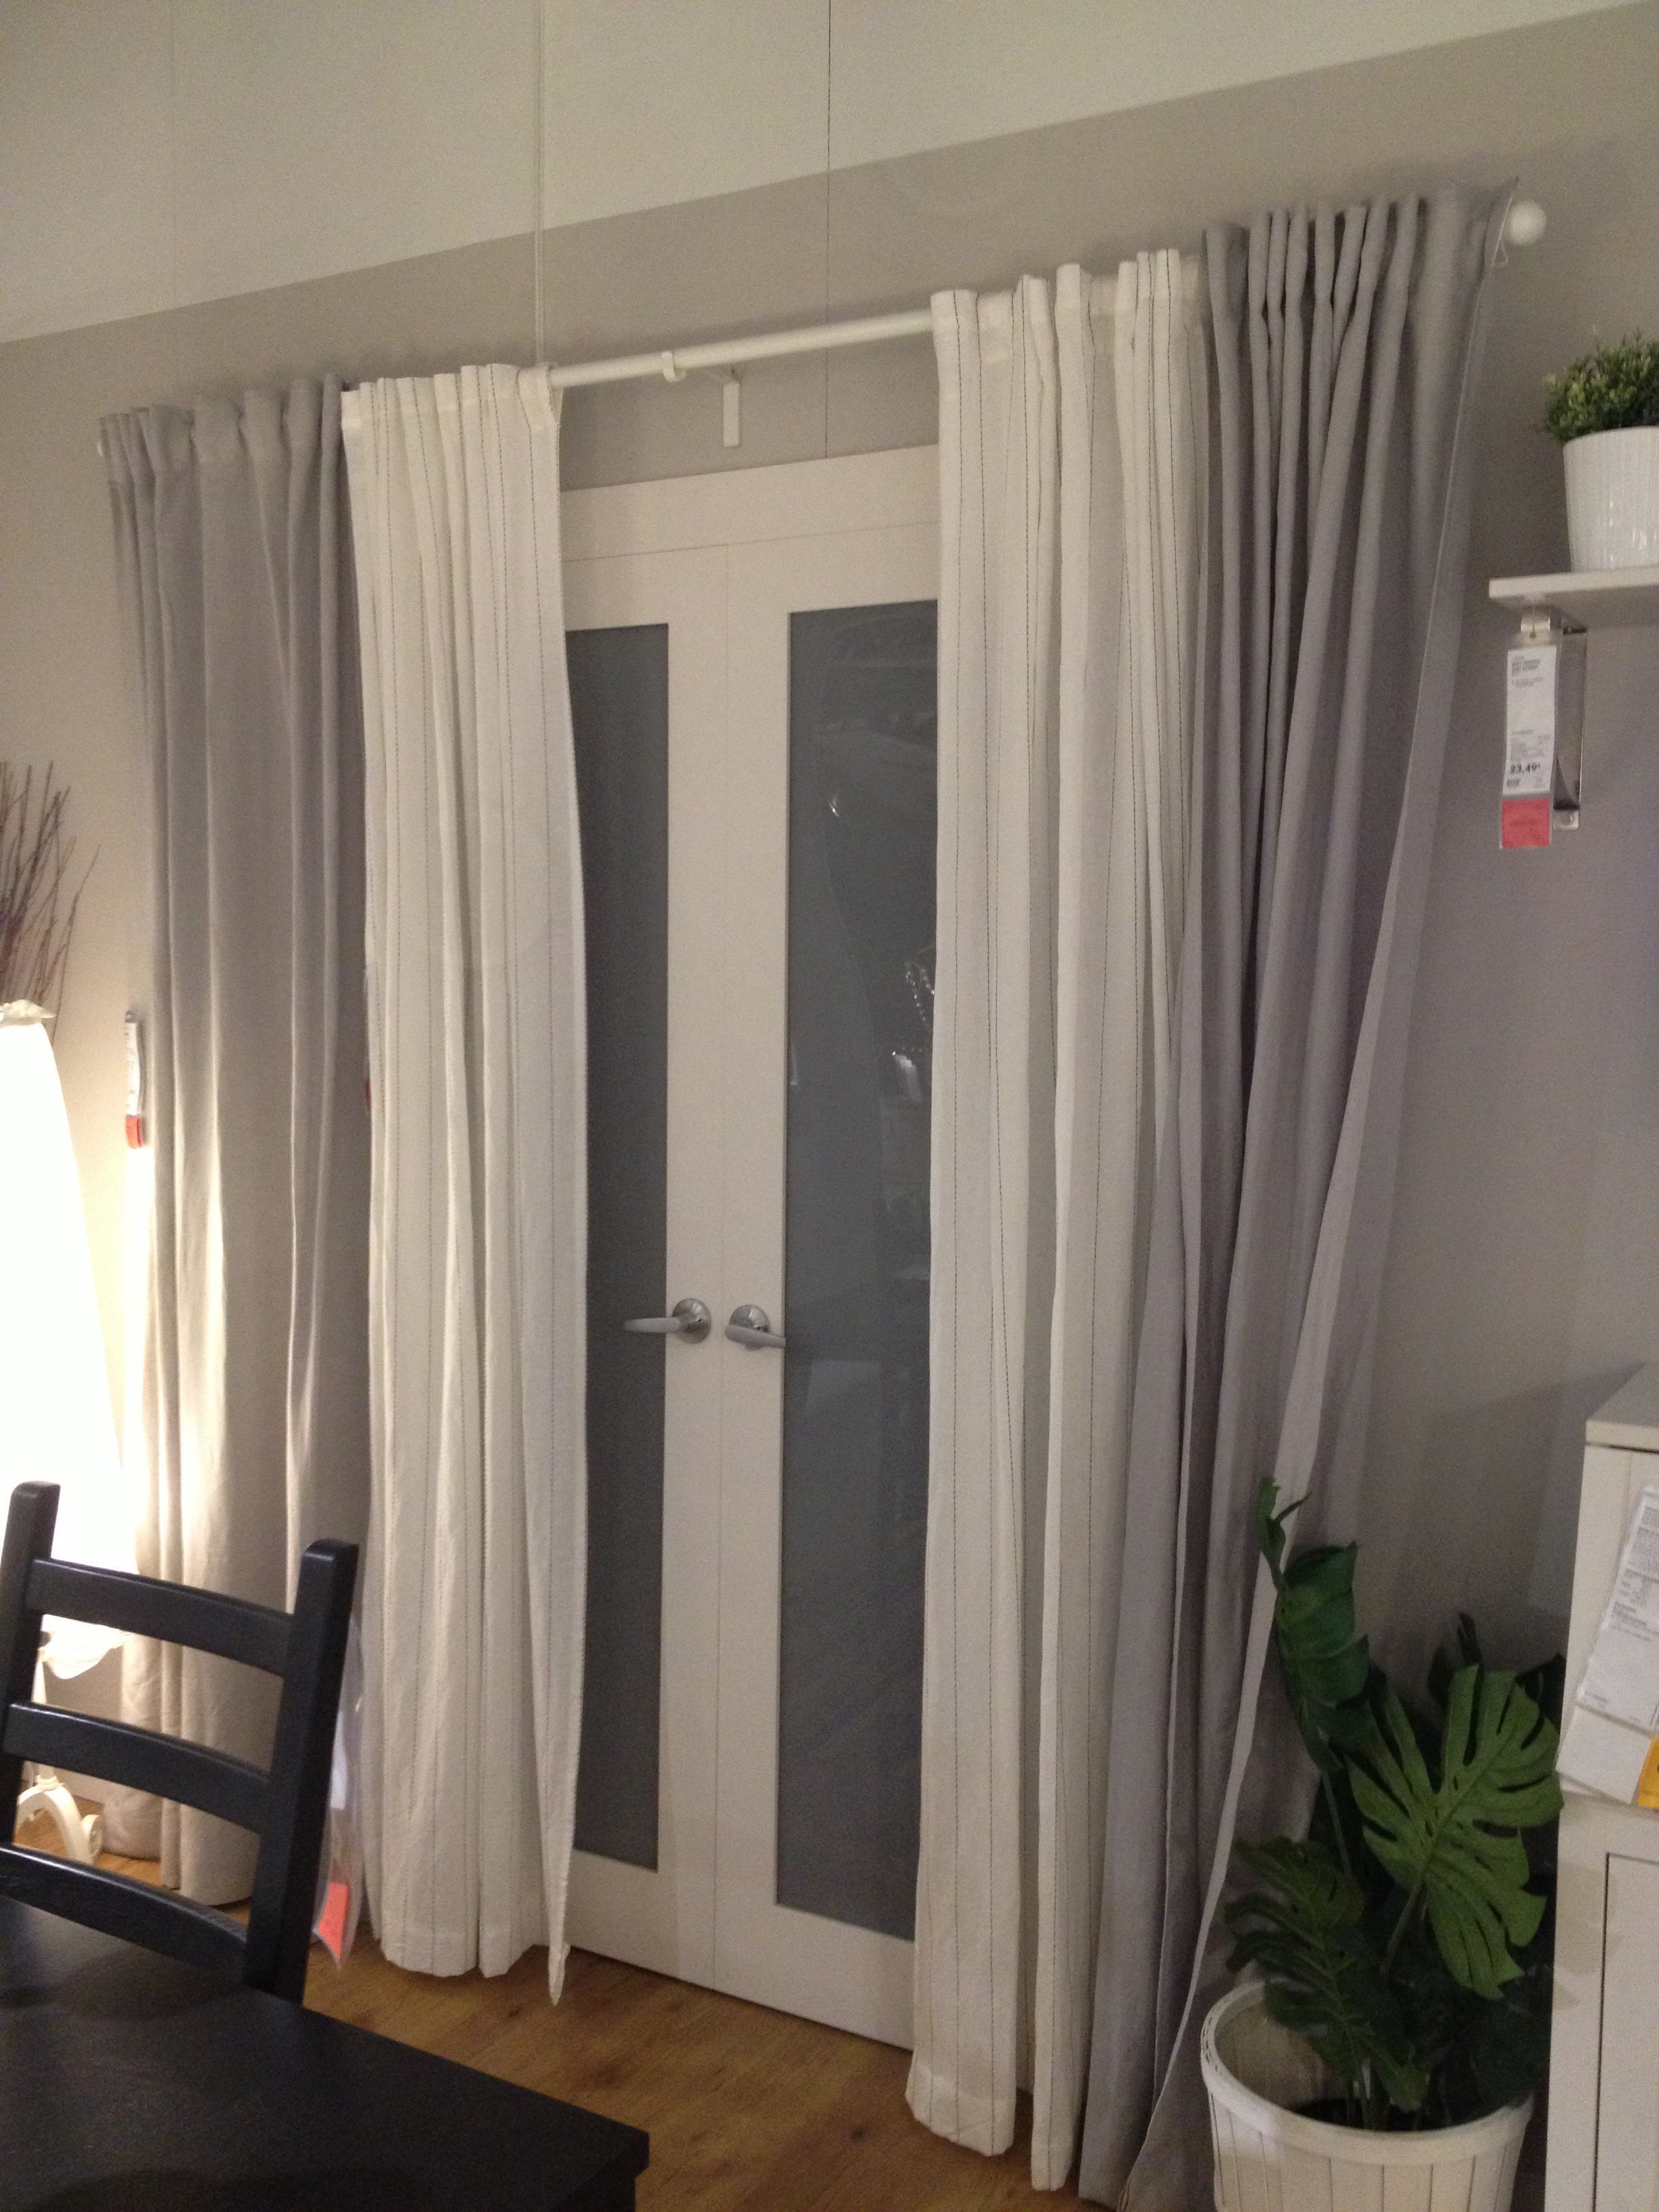 Back Patio Door Curtains Let Sunlight In During The Day Keep People From Looking At Night